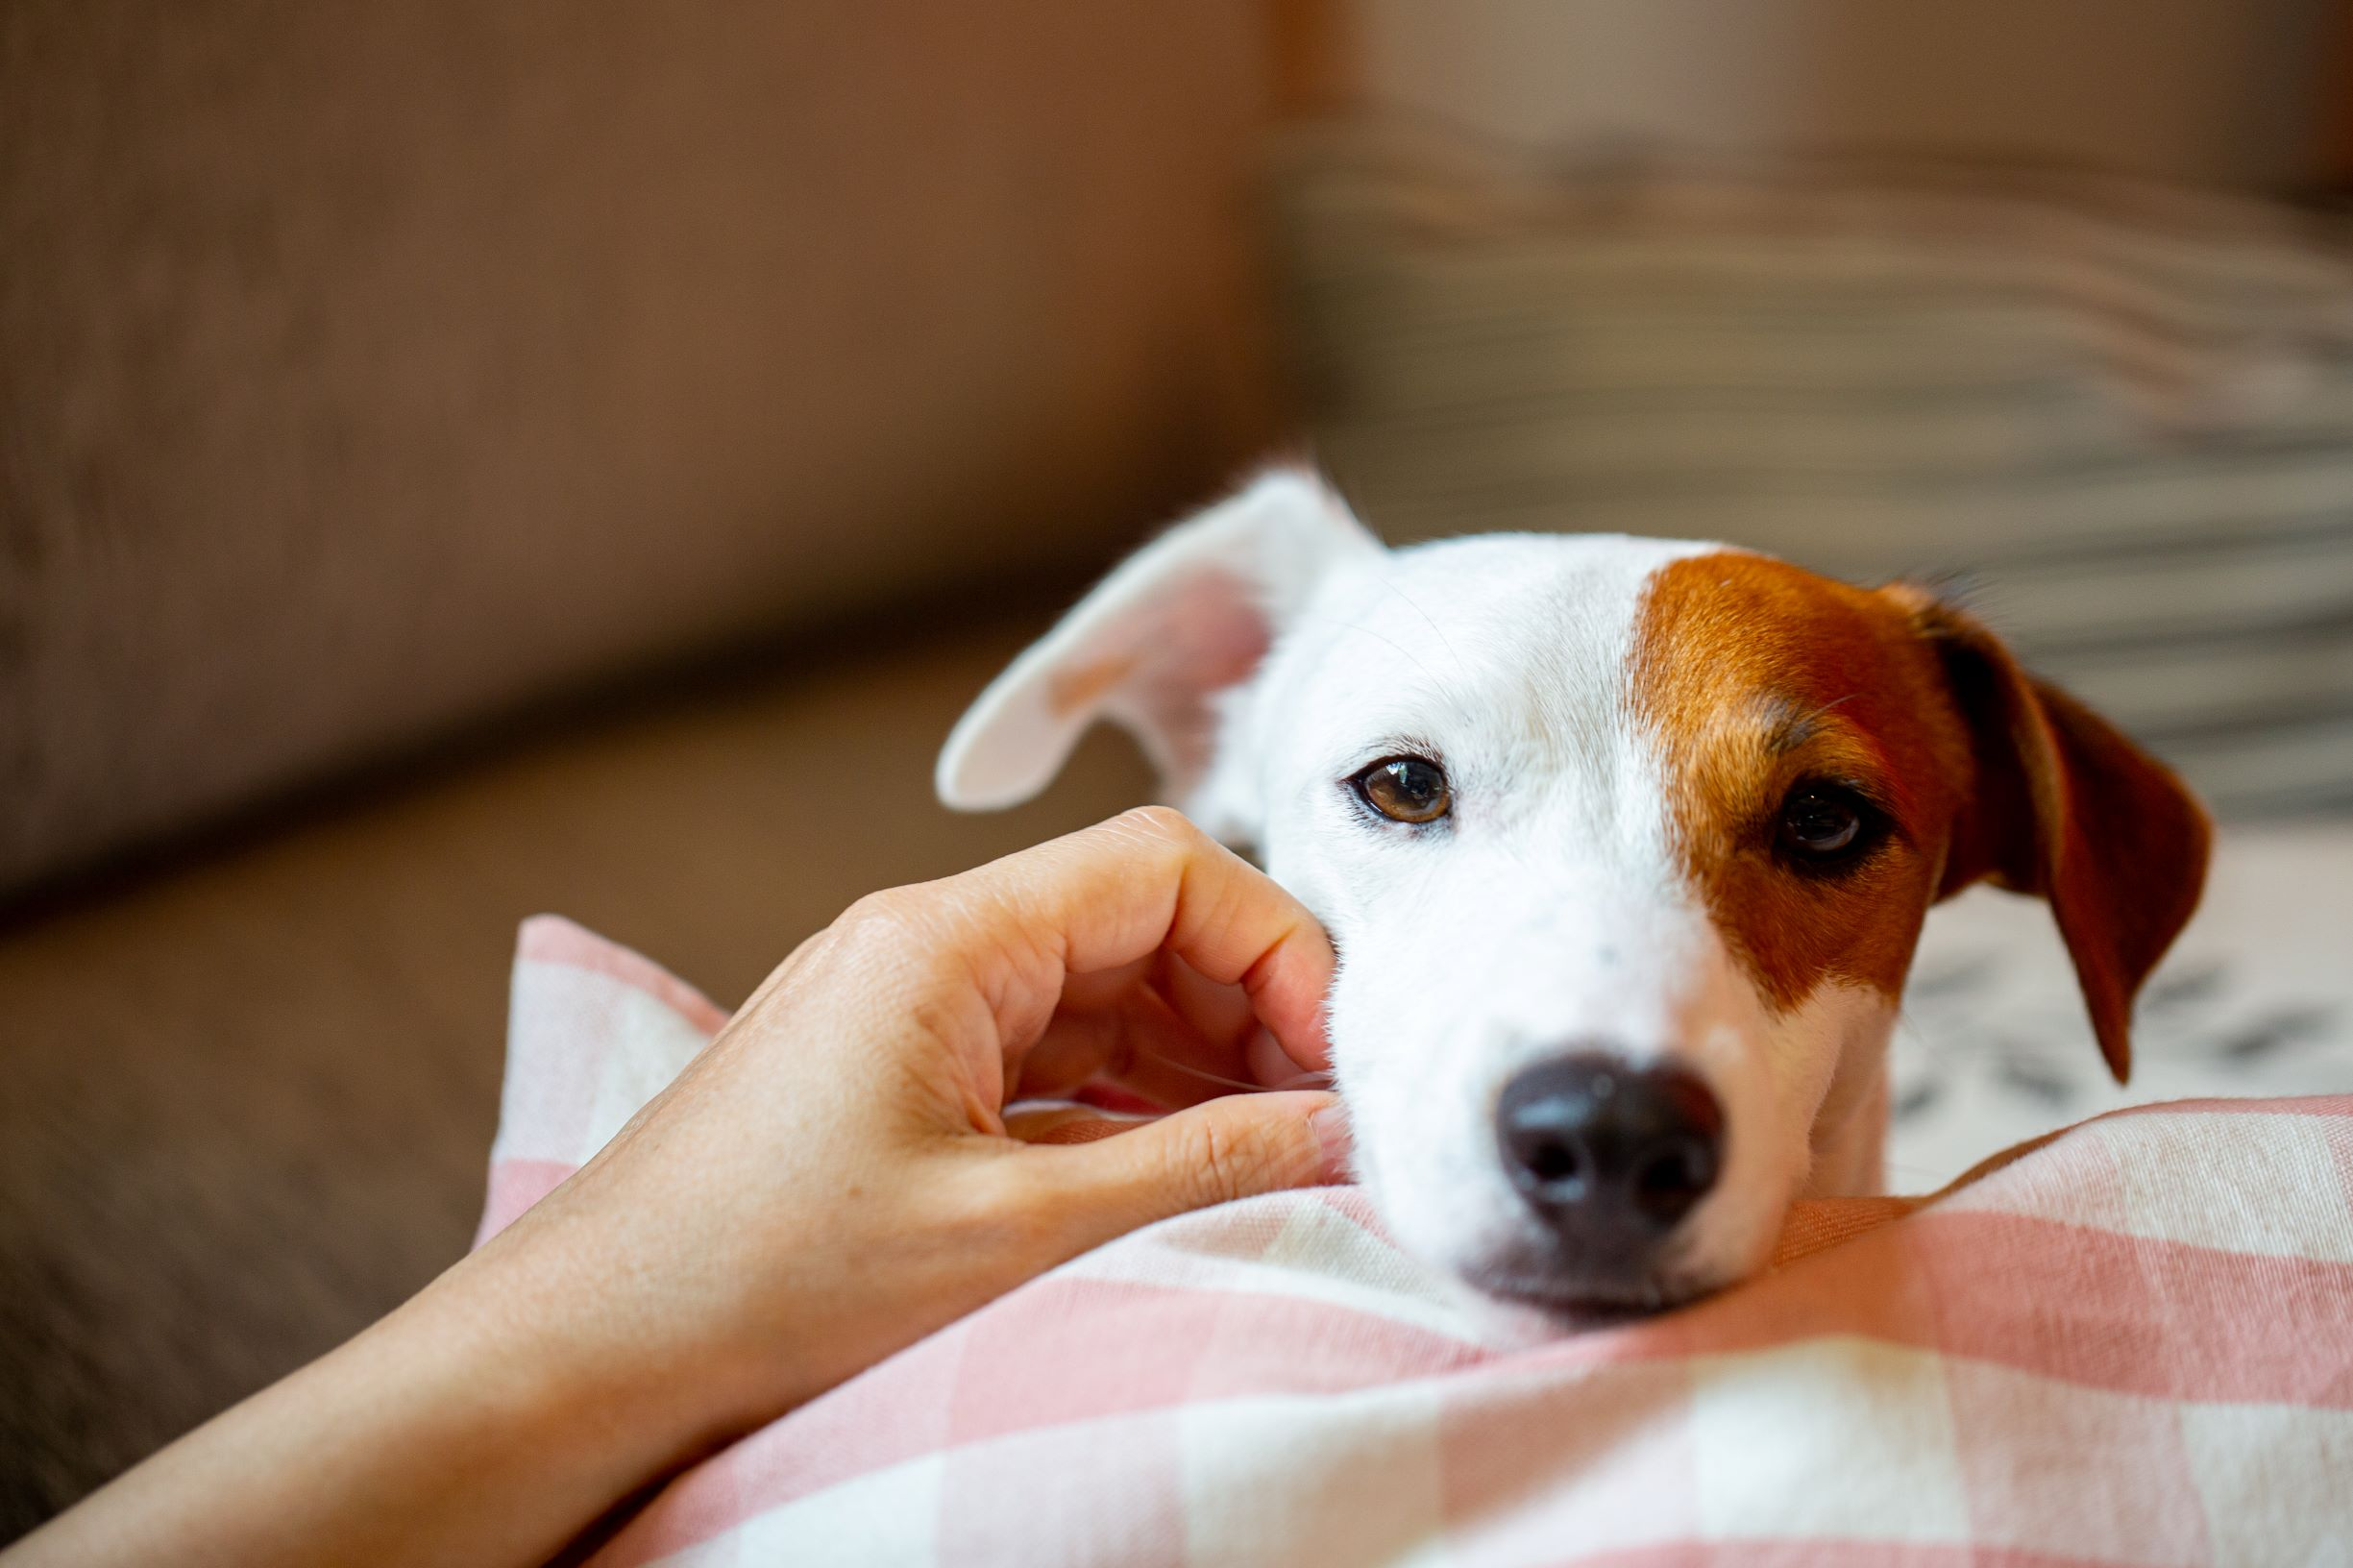 new coronavirus discovered, and it jumped from canines to individuals New coronavirus discovered, and it is being Transmitted from Canines to Humans WdhrVa7WpPrD8BRh7oAwCD